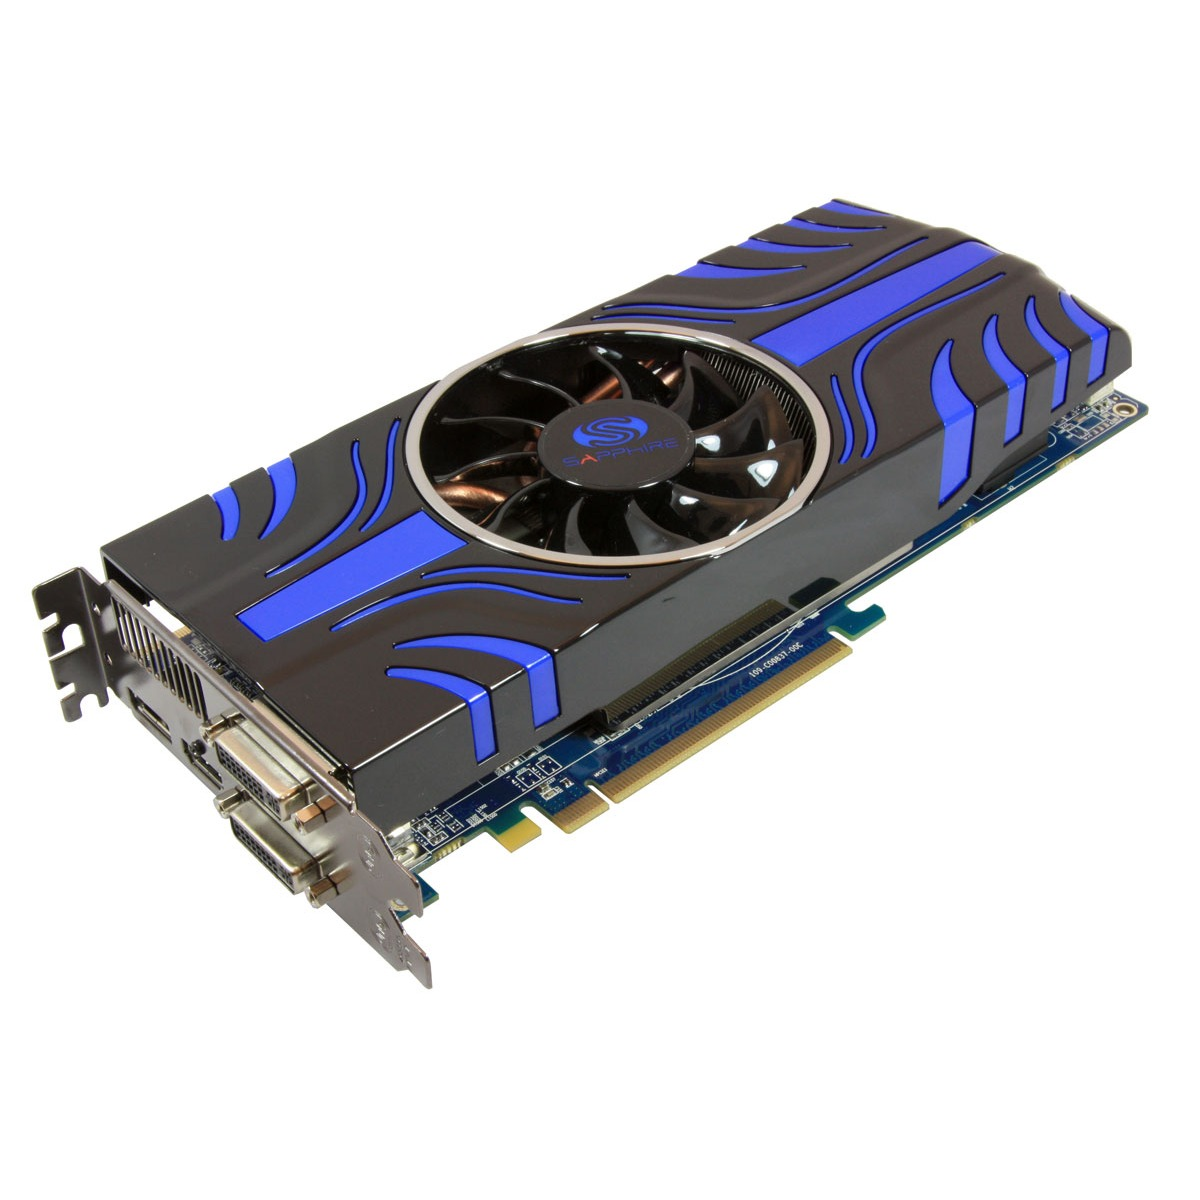 Carte graphique Sapphire Radeon HD 5850 TOXIC Edition Sapphire Radeon HD 5850 TOXIC Edition - 1 Go HDMI/Dual DVI/DisplayPort - PCI Express (ATI Radeon HD 5850)